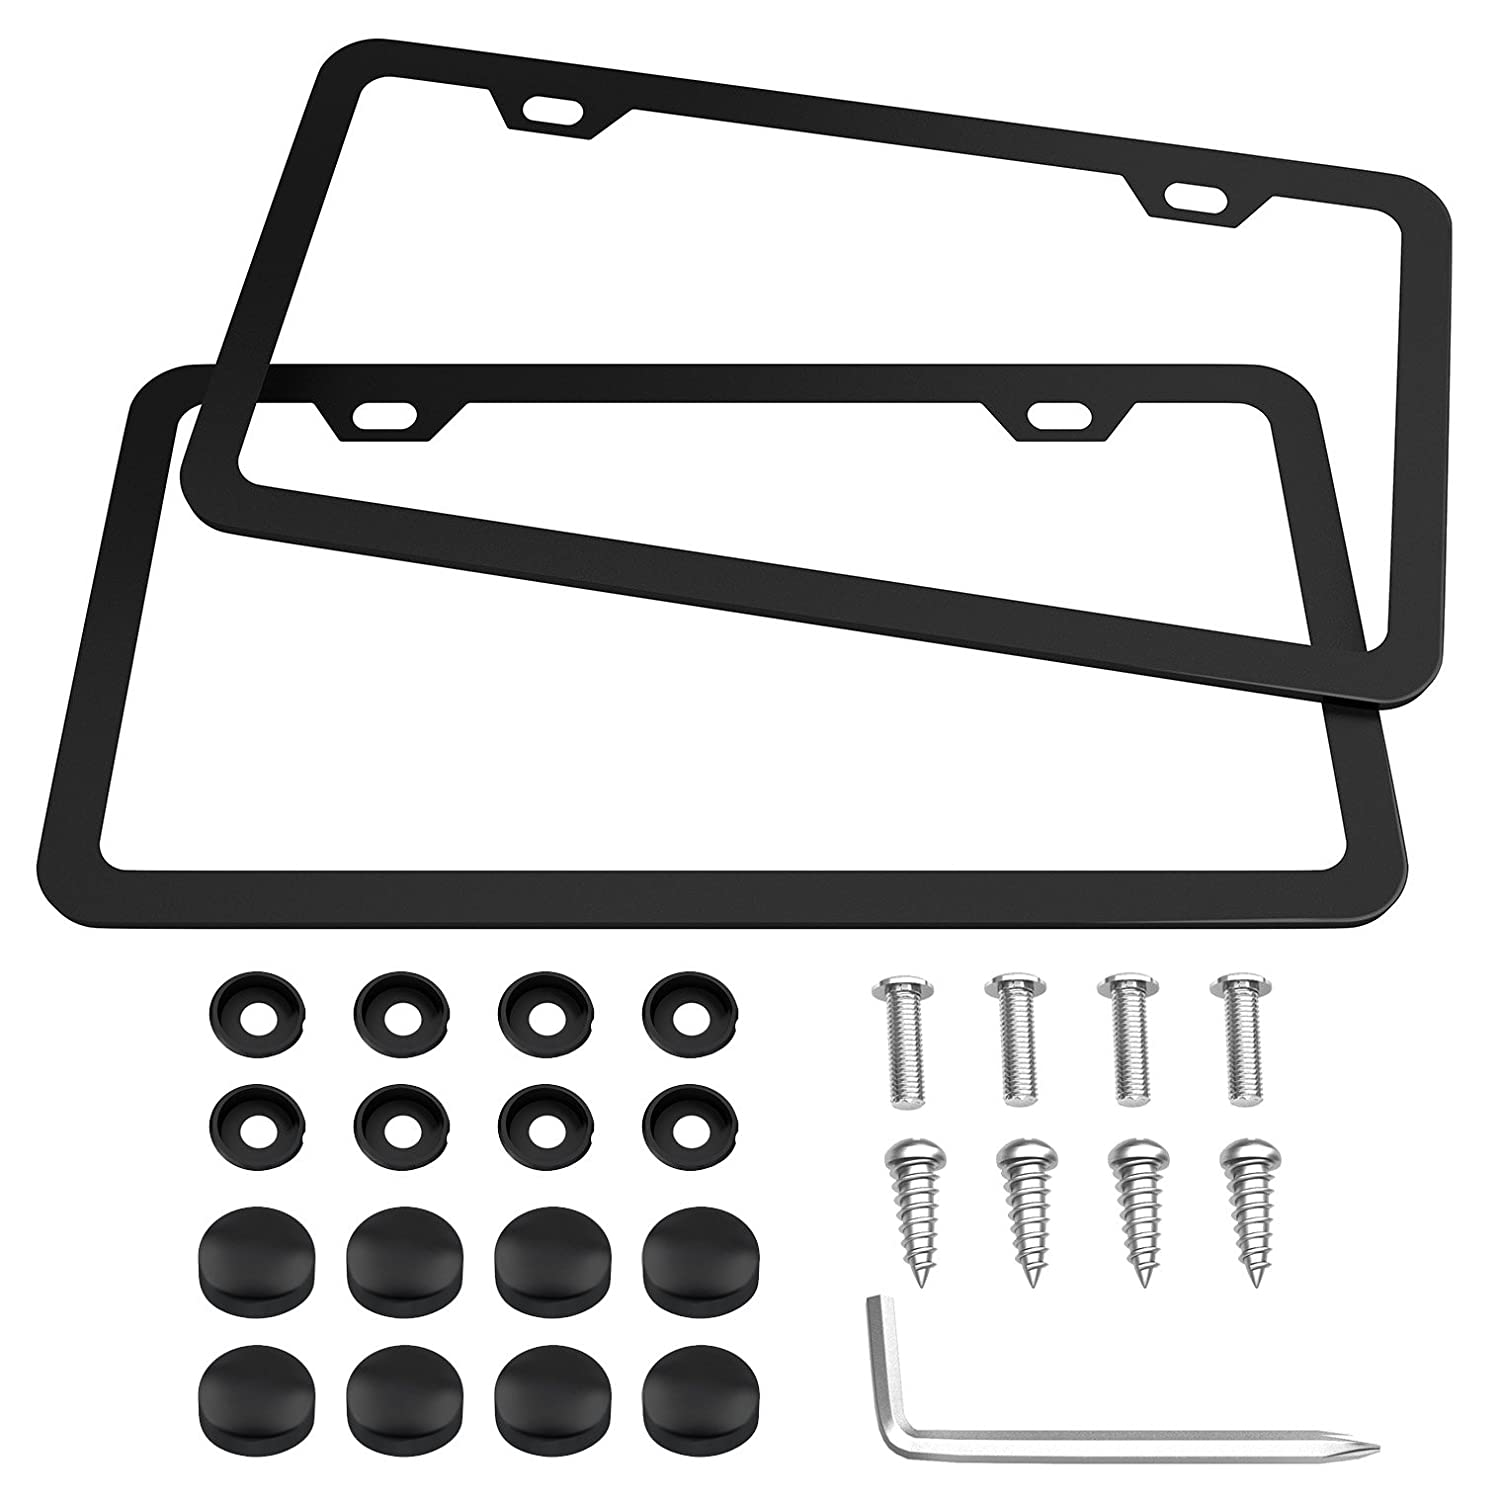 Advgears Black Car License Plate Frame Matte Stainless Steel Car Licence Plate Covers,2 PCS Slim Design Licenses Plates Frames With Screw Caps For US Vehicles 4 Holes